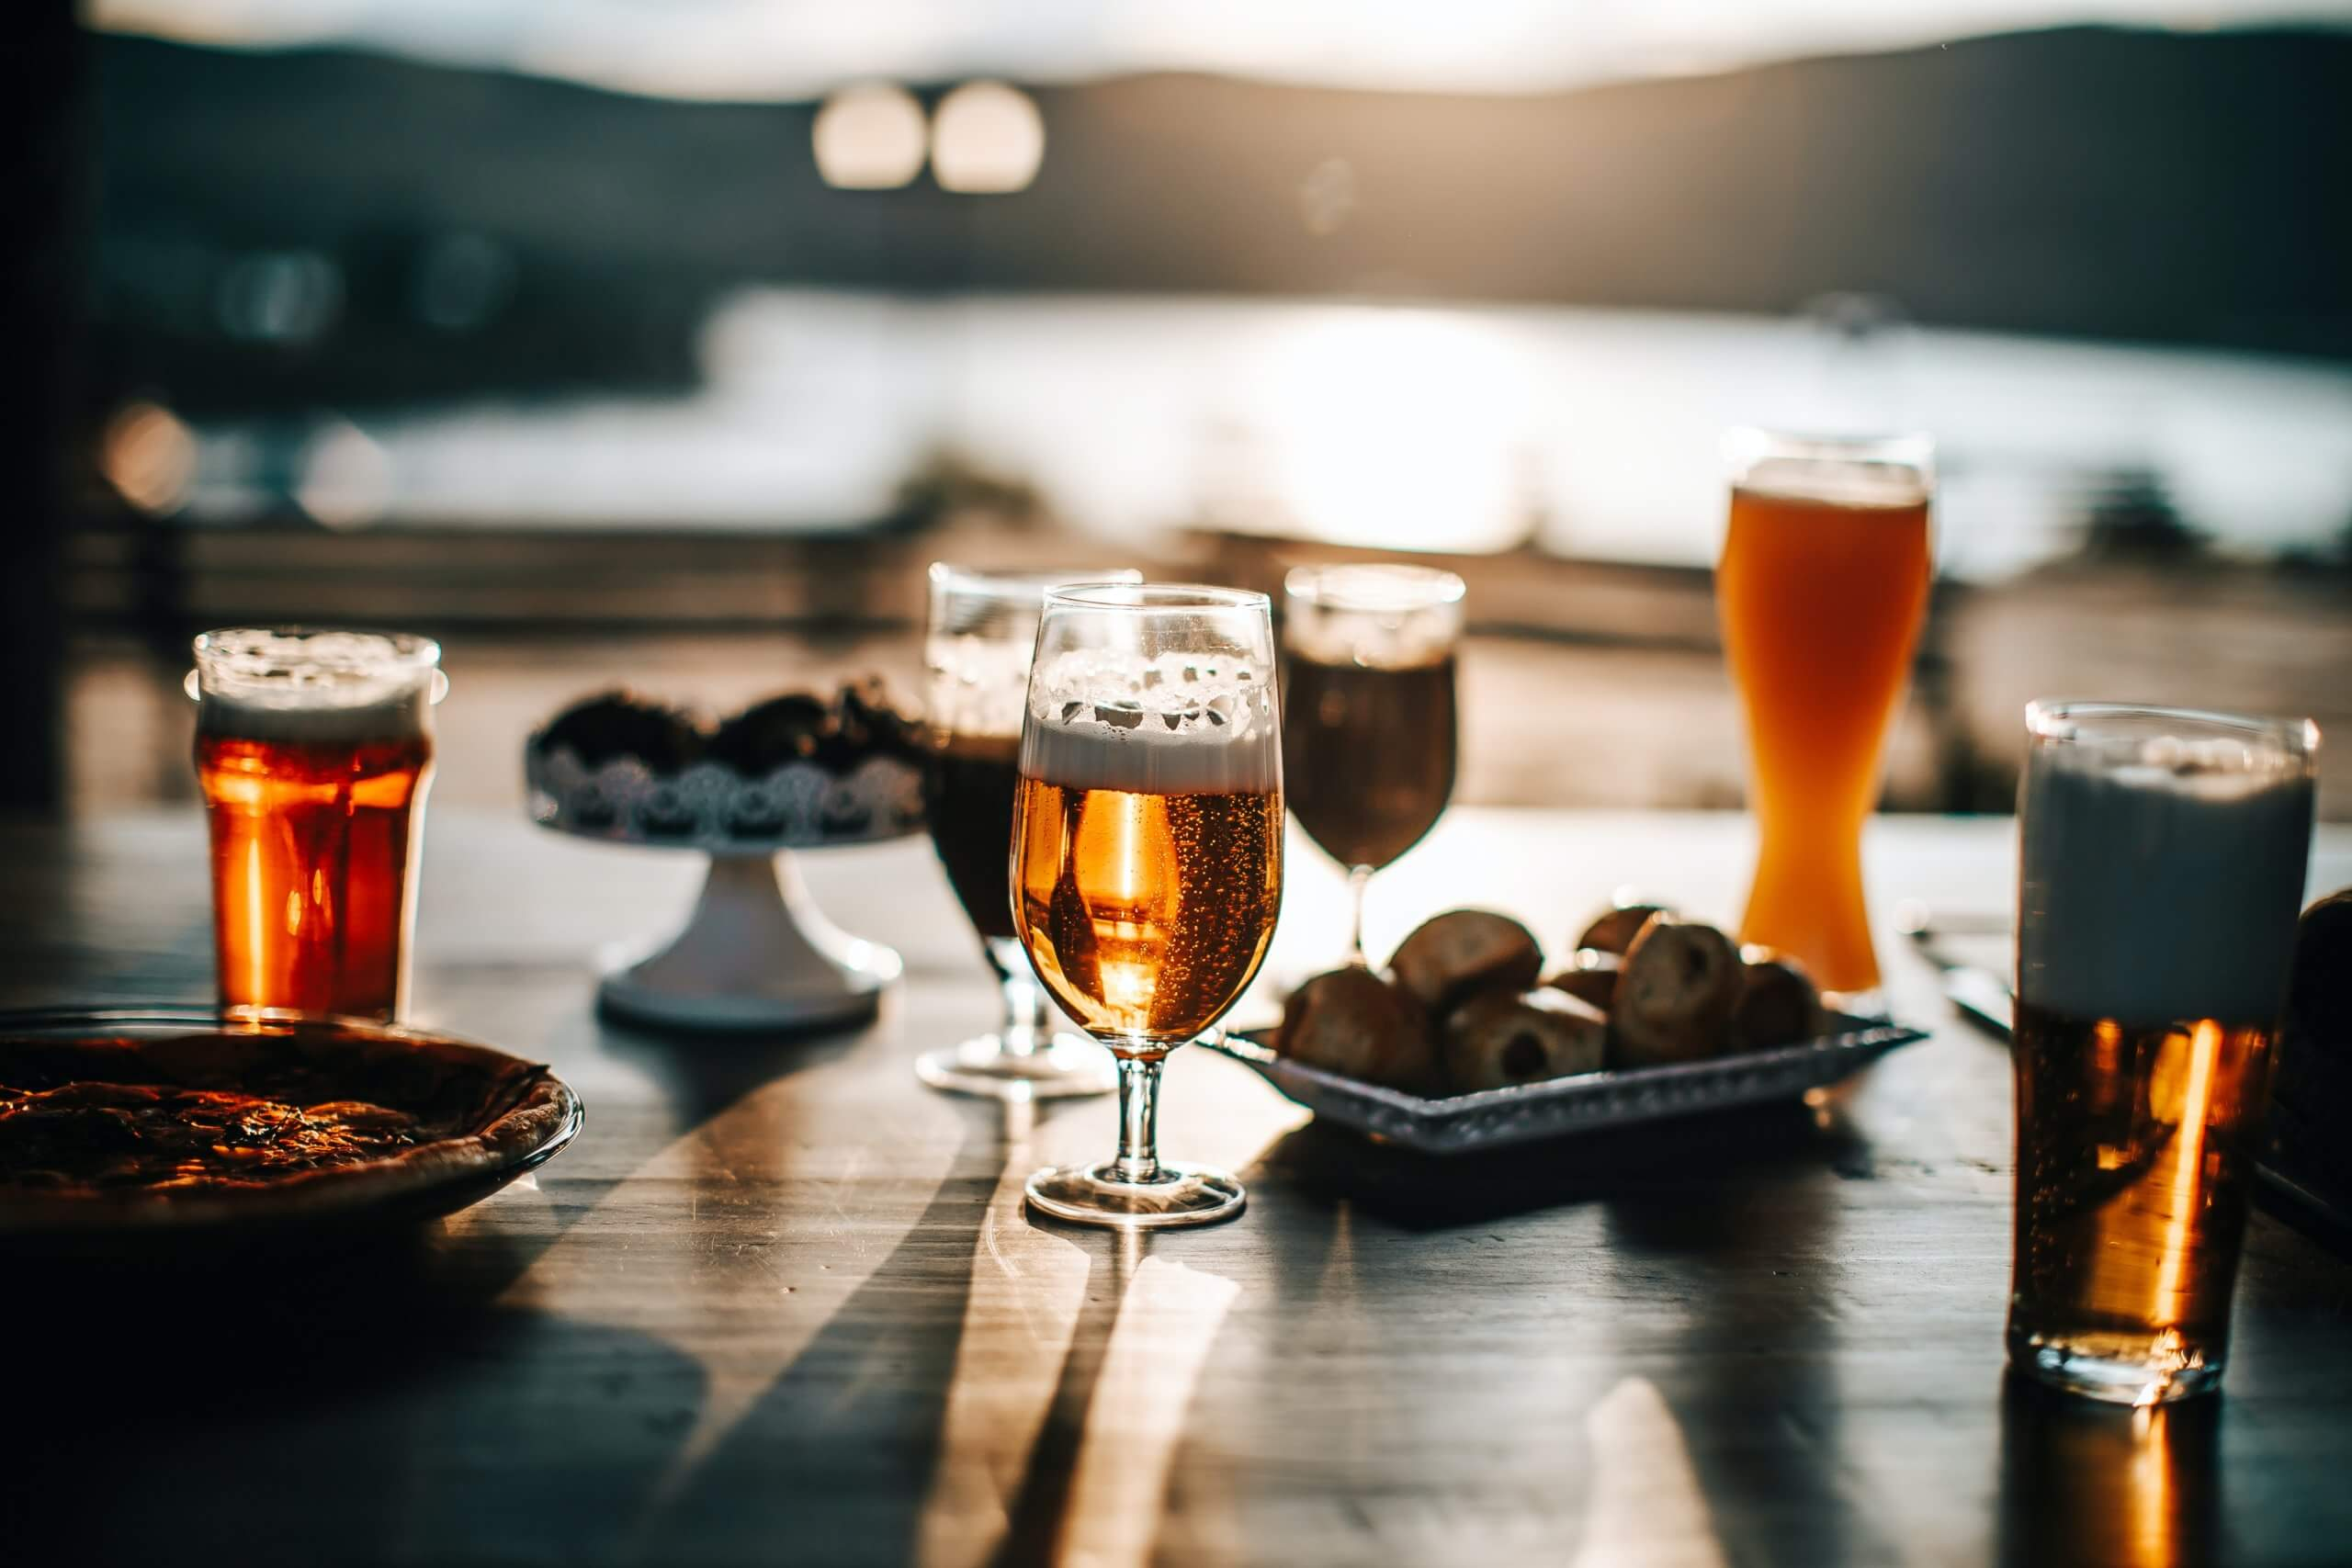 Outdoor restaurant table with beer glasses